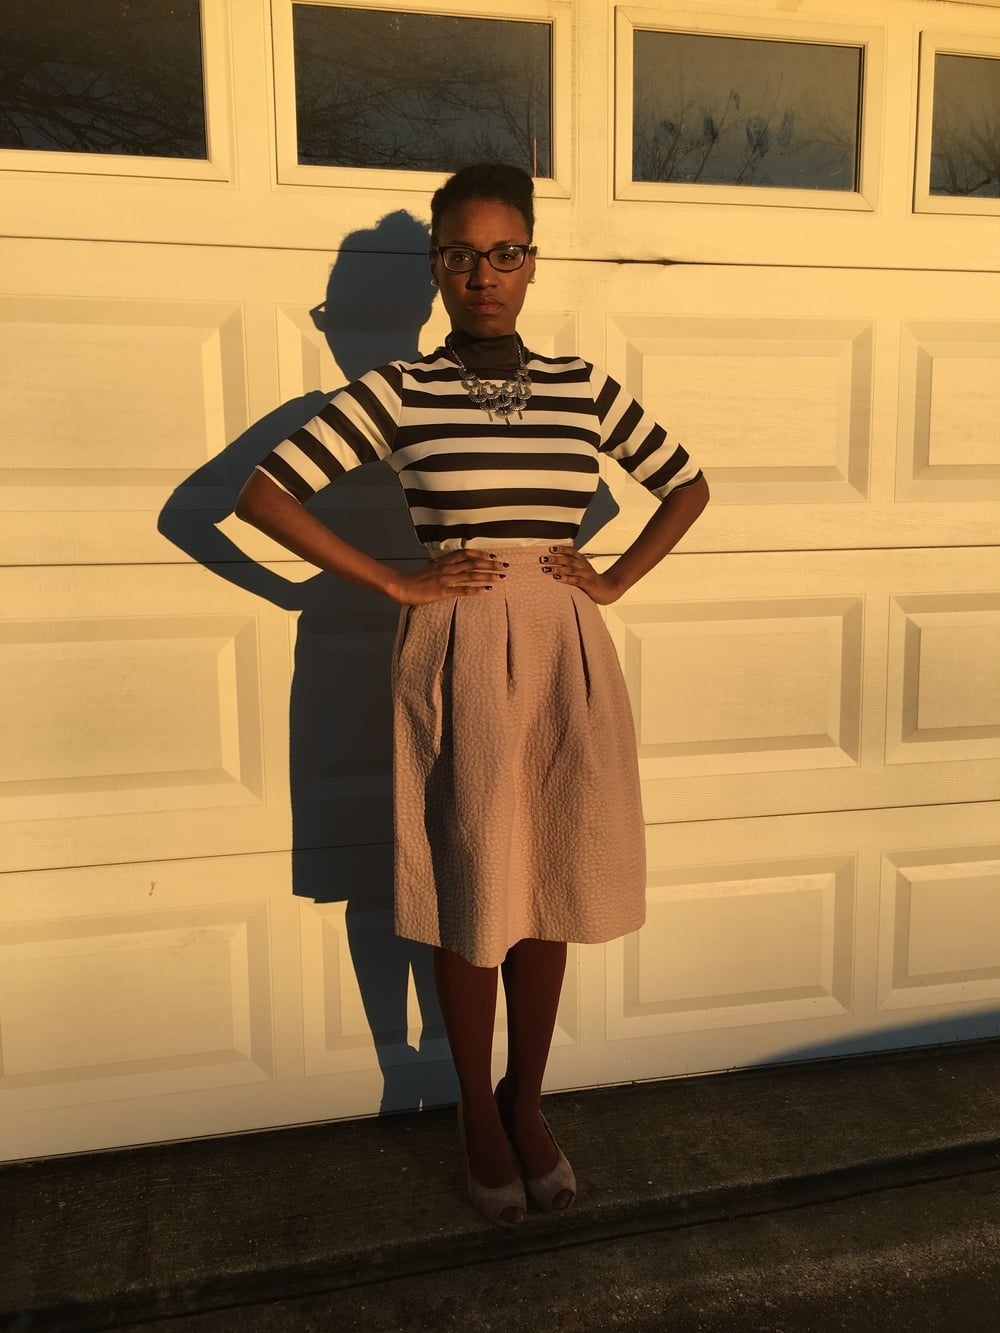 outfit details - shirt: Zara; skirt: H&M; shoes: Gianni Bini; necklace: gifted vintage